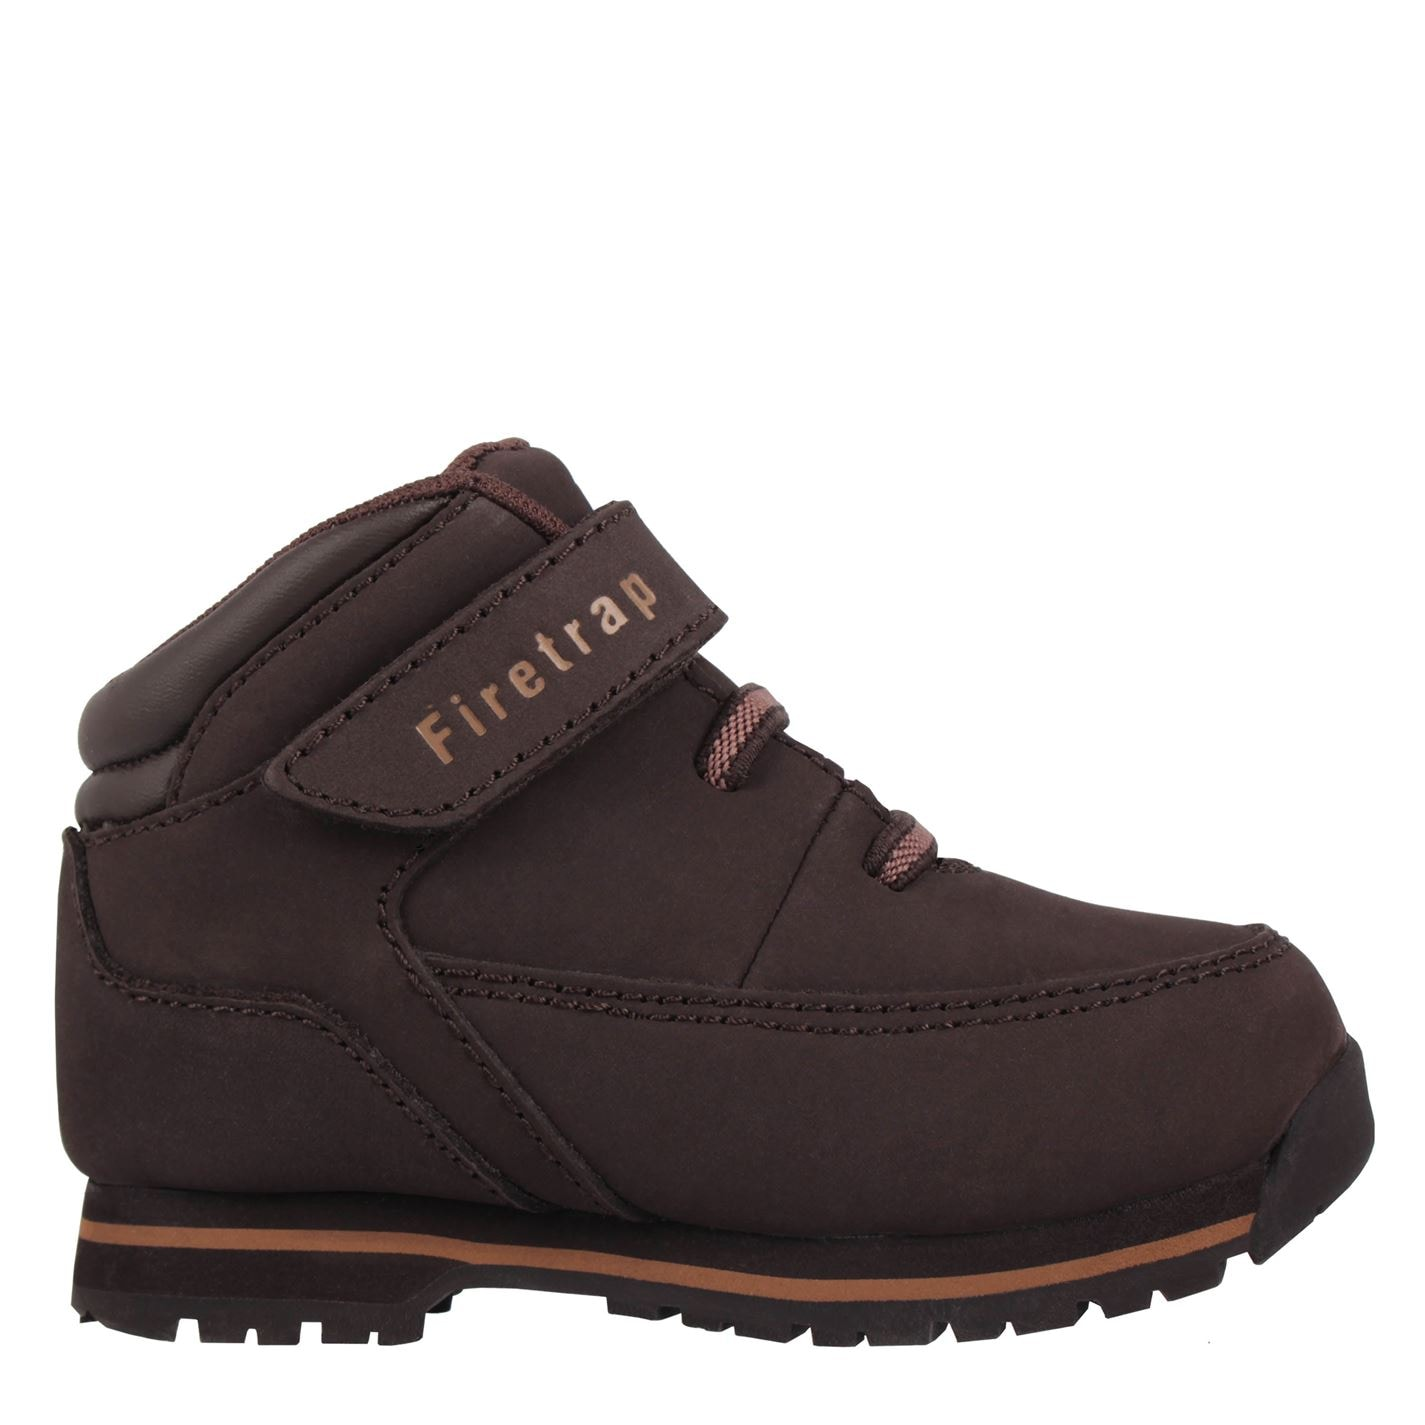 Firetrap Rhino Infant Boots Brown/Brown